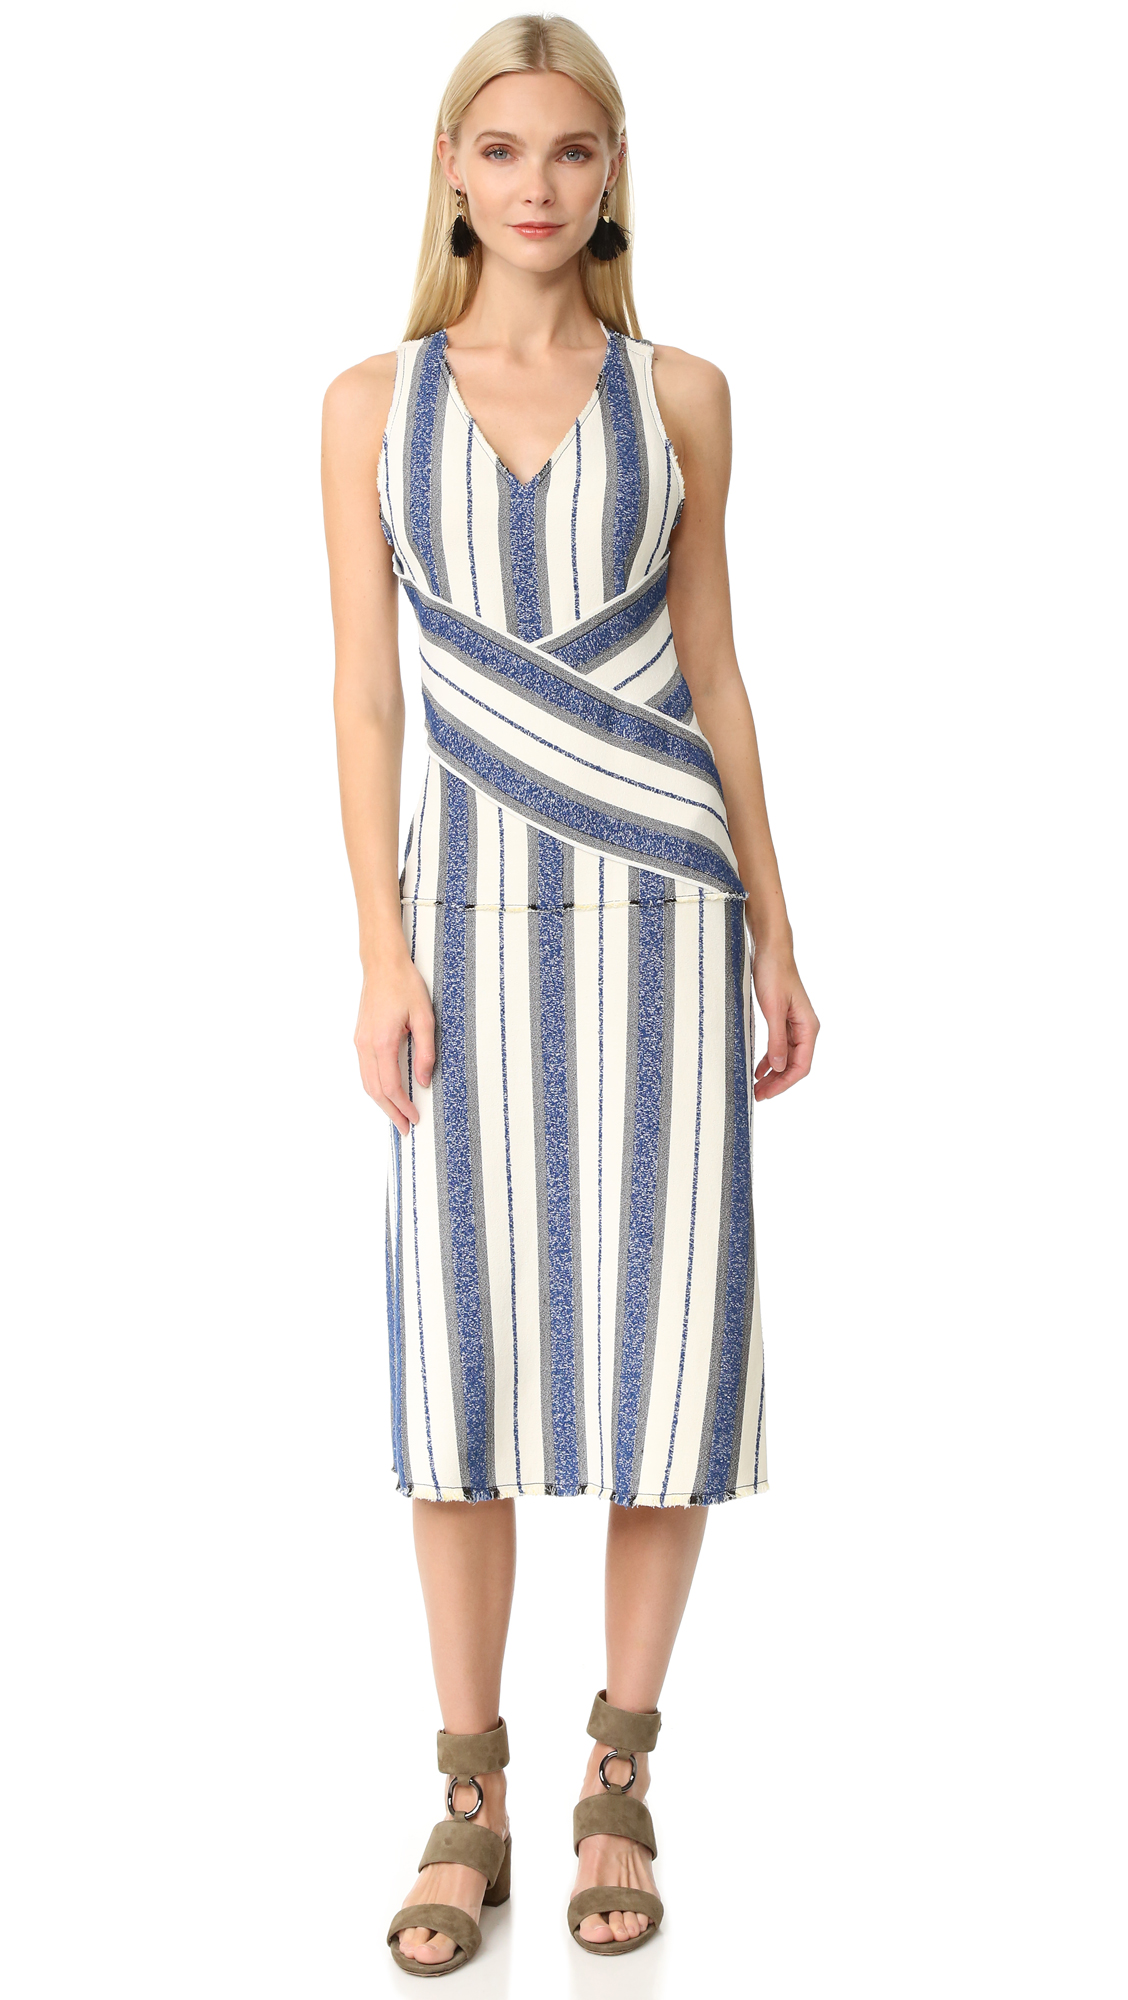 Edun Marine Stripe Dress - Marine Multi at Shopbop